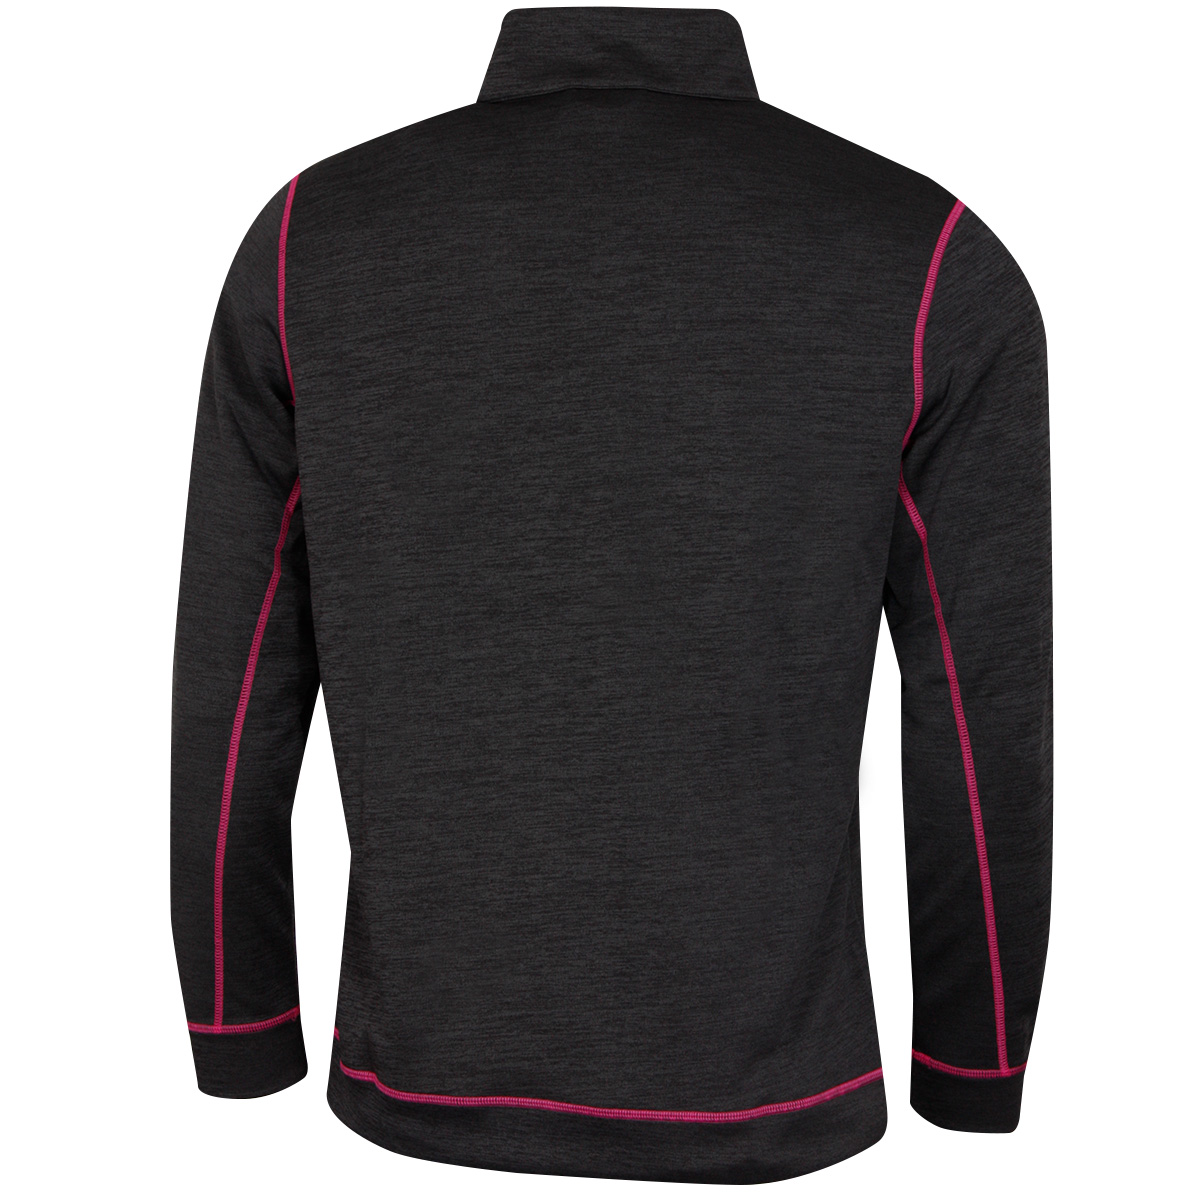 Puma-Golf-Mens-Go-Low-1-4-Zip-DryCell-Wicking-Chest-Pocket-Sweater-48-OFF-RRP thumbnail 3